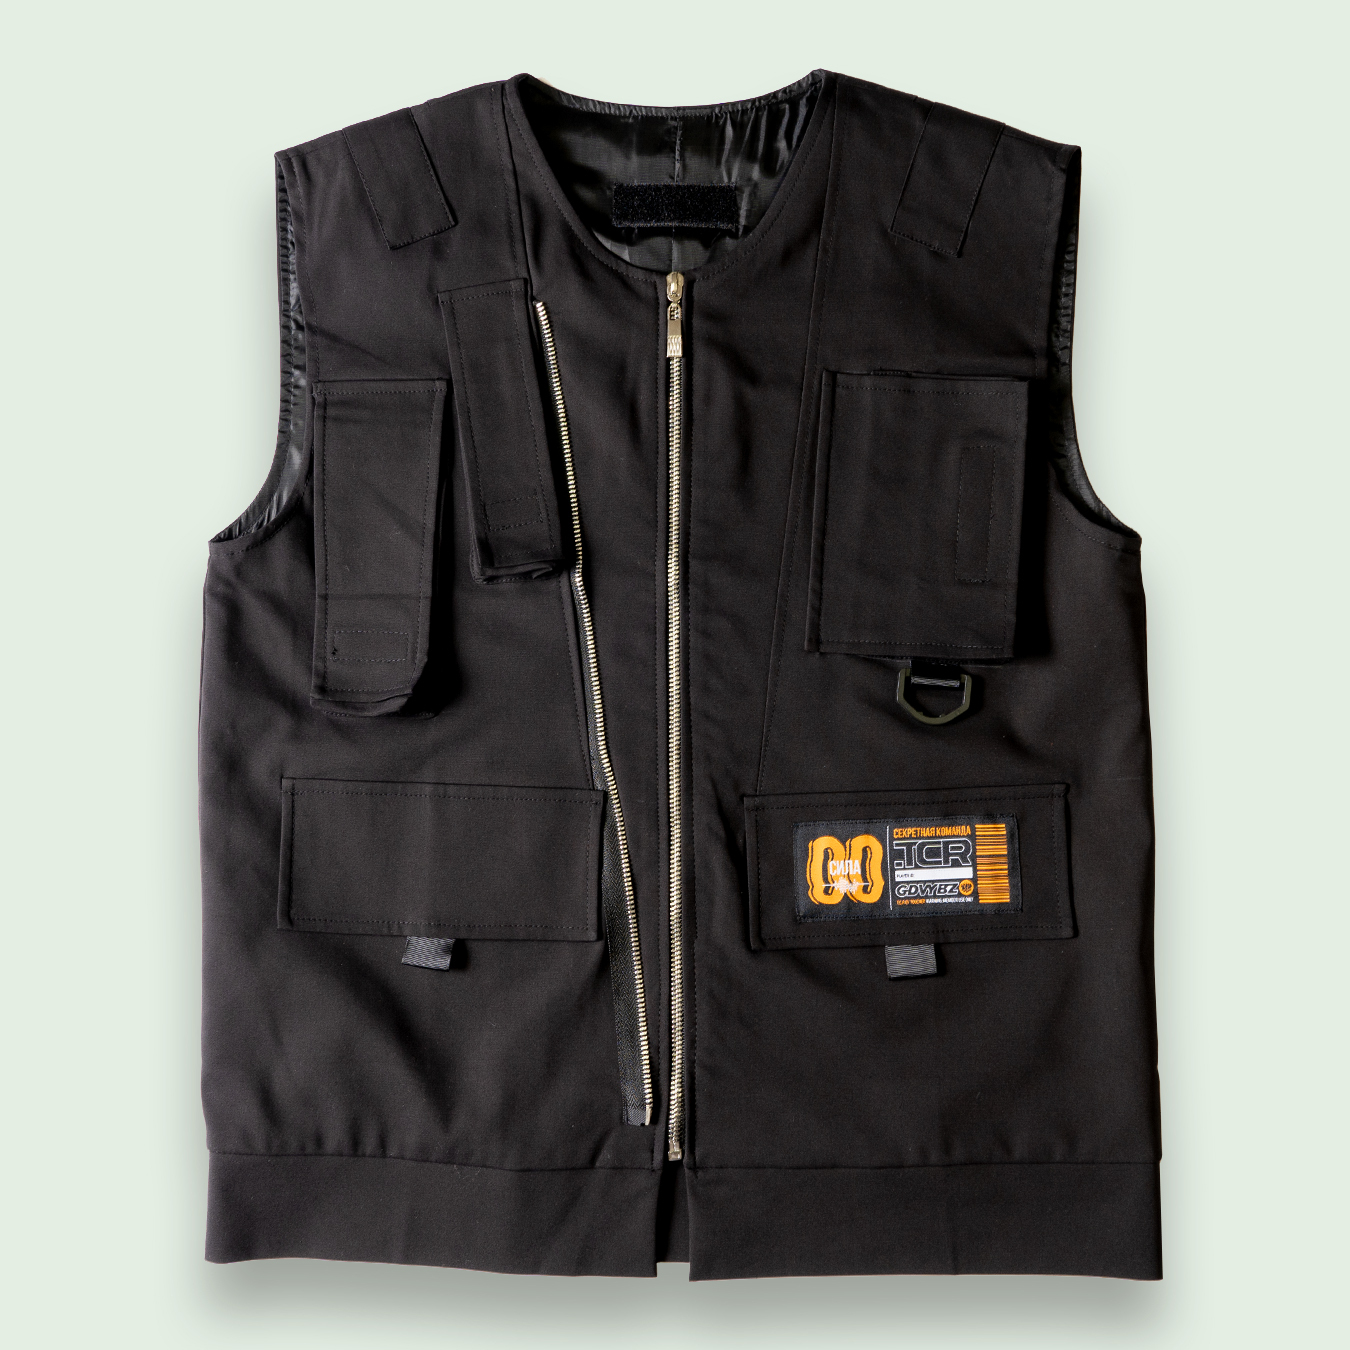 TCR-TEX WORK VEST - BLACK